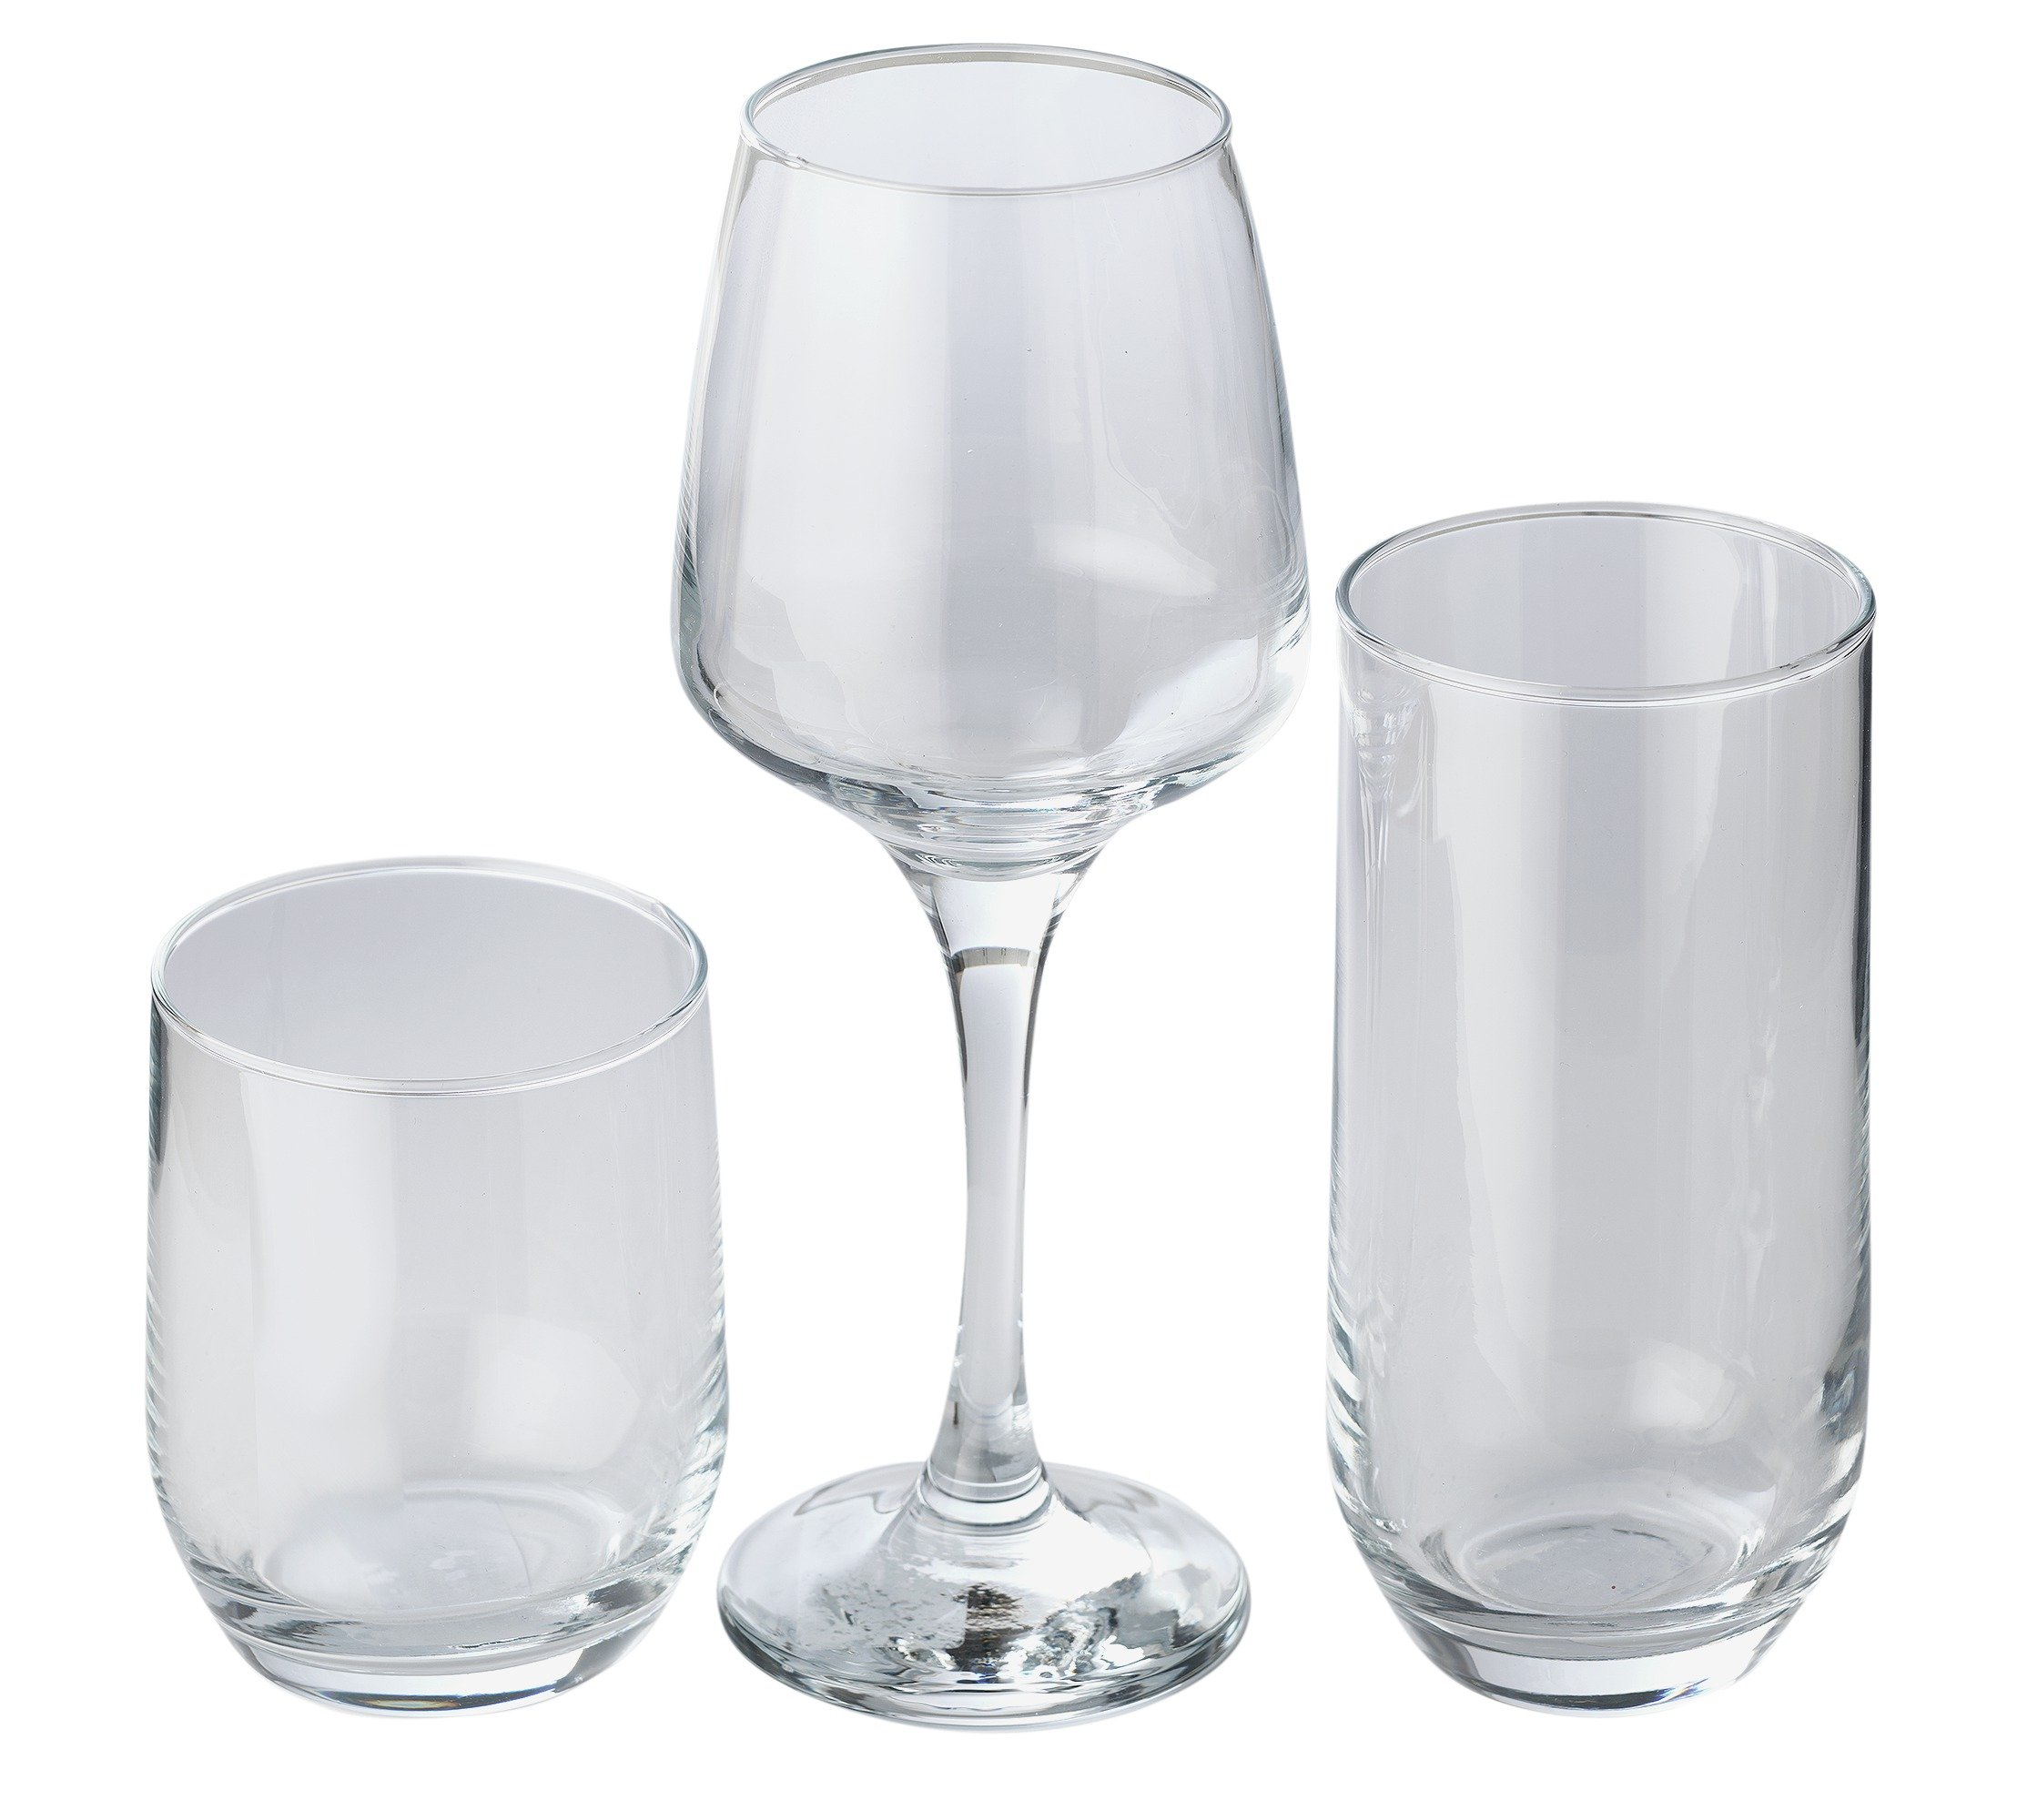 sale on home 12 piece glassware set home by argos now. Black Bedroom Furniture Sets. Home Design Ideas